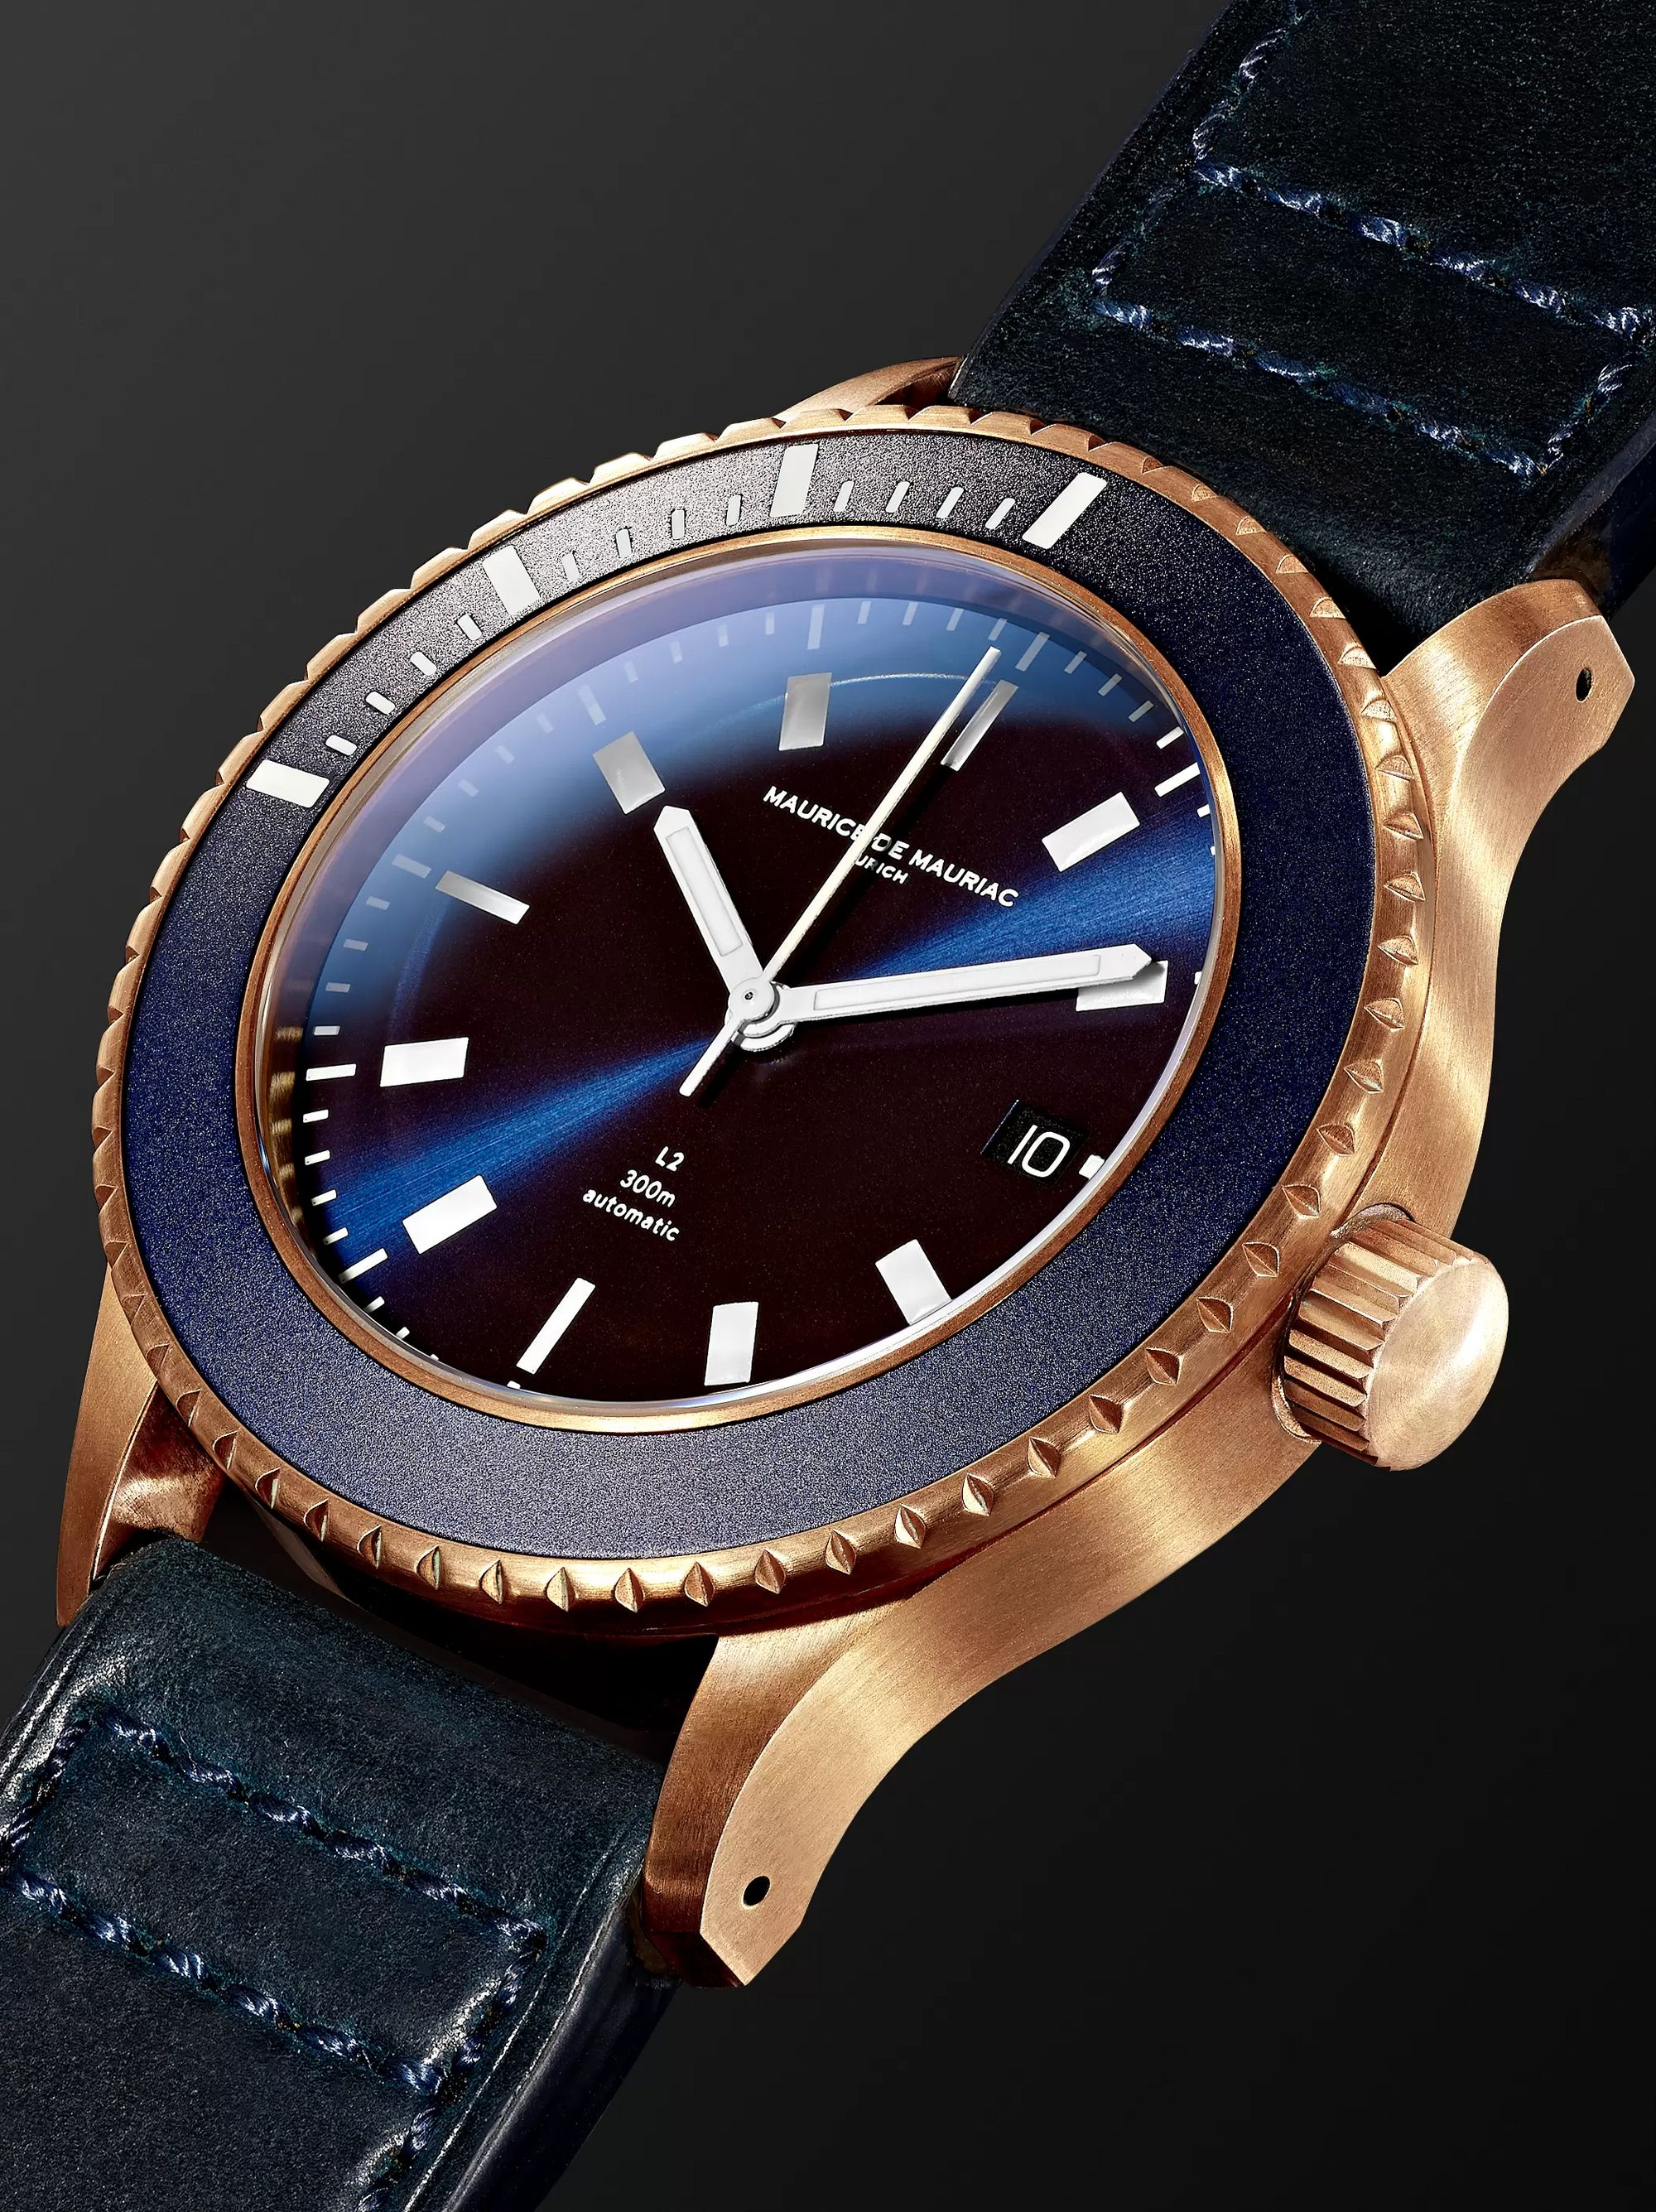 Maurice de Mauriac L2 42mm Bronze and Leather Watch, Ref. No. L2 BRONZE DEEP BLUE